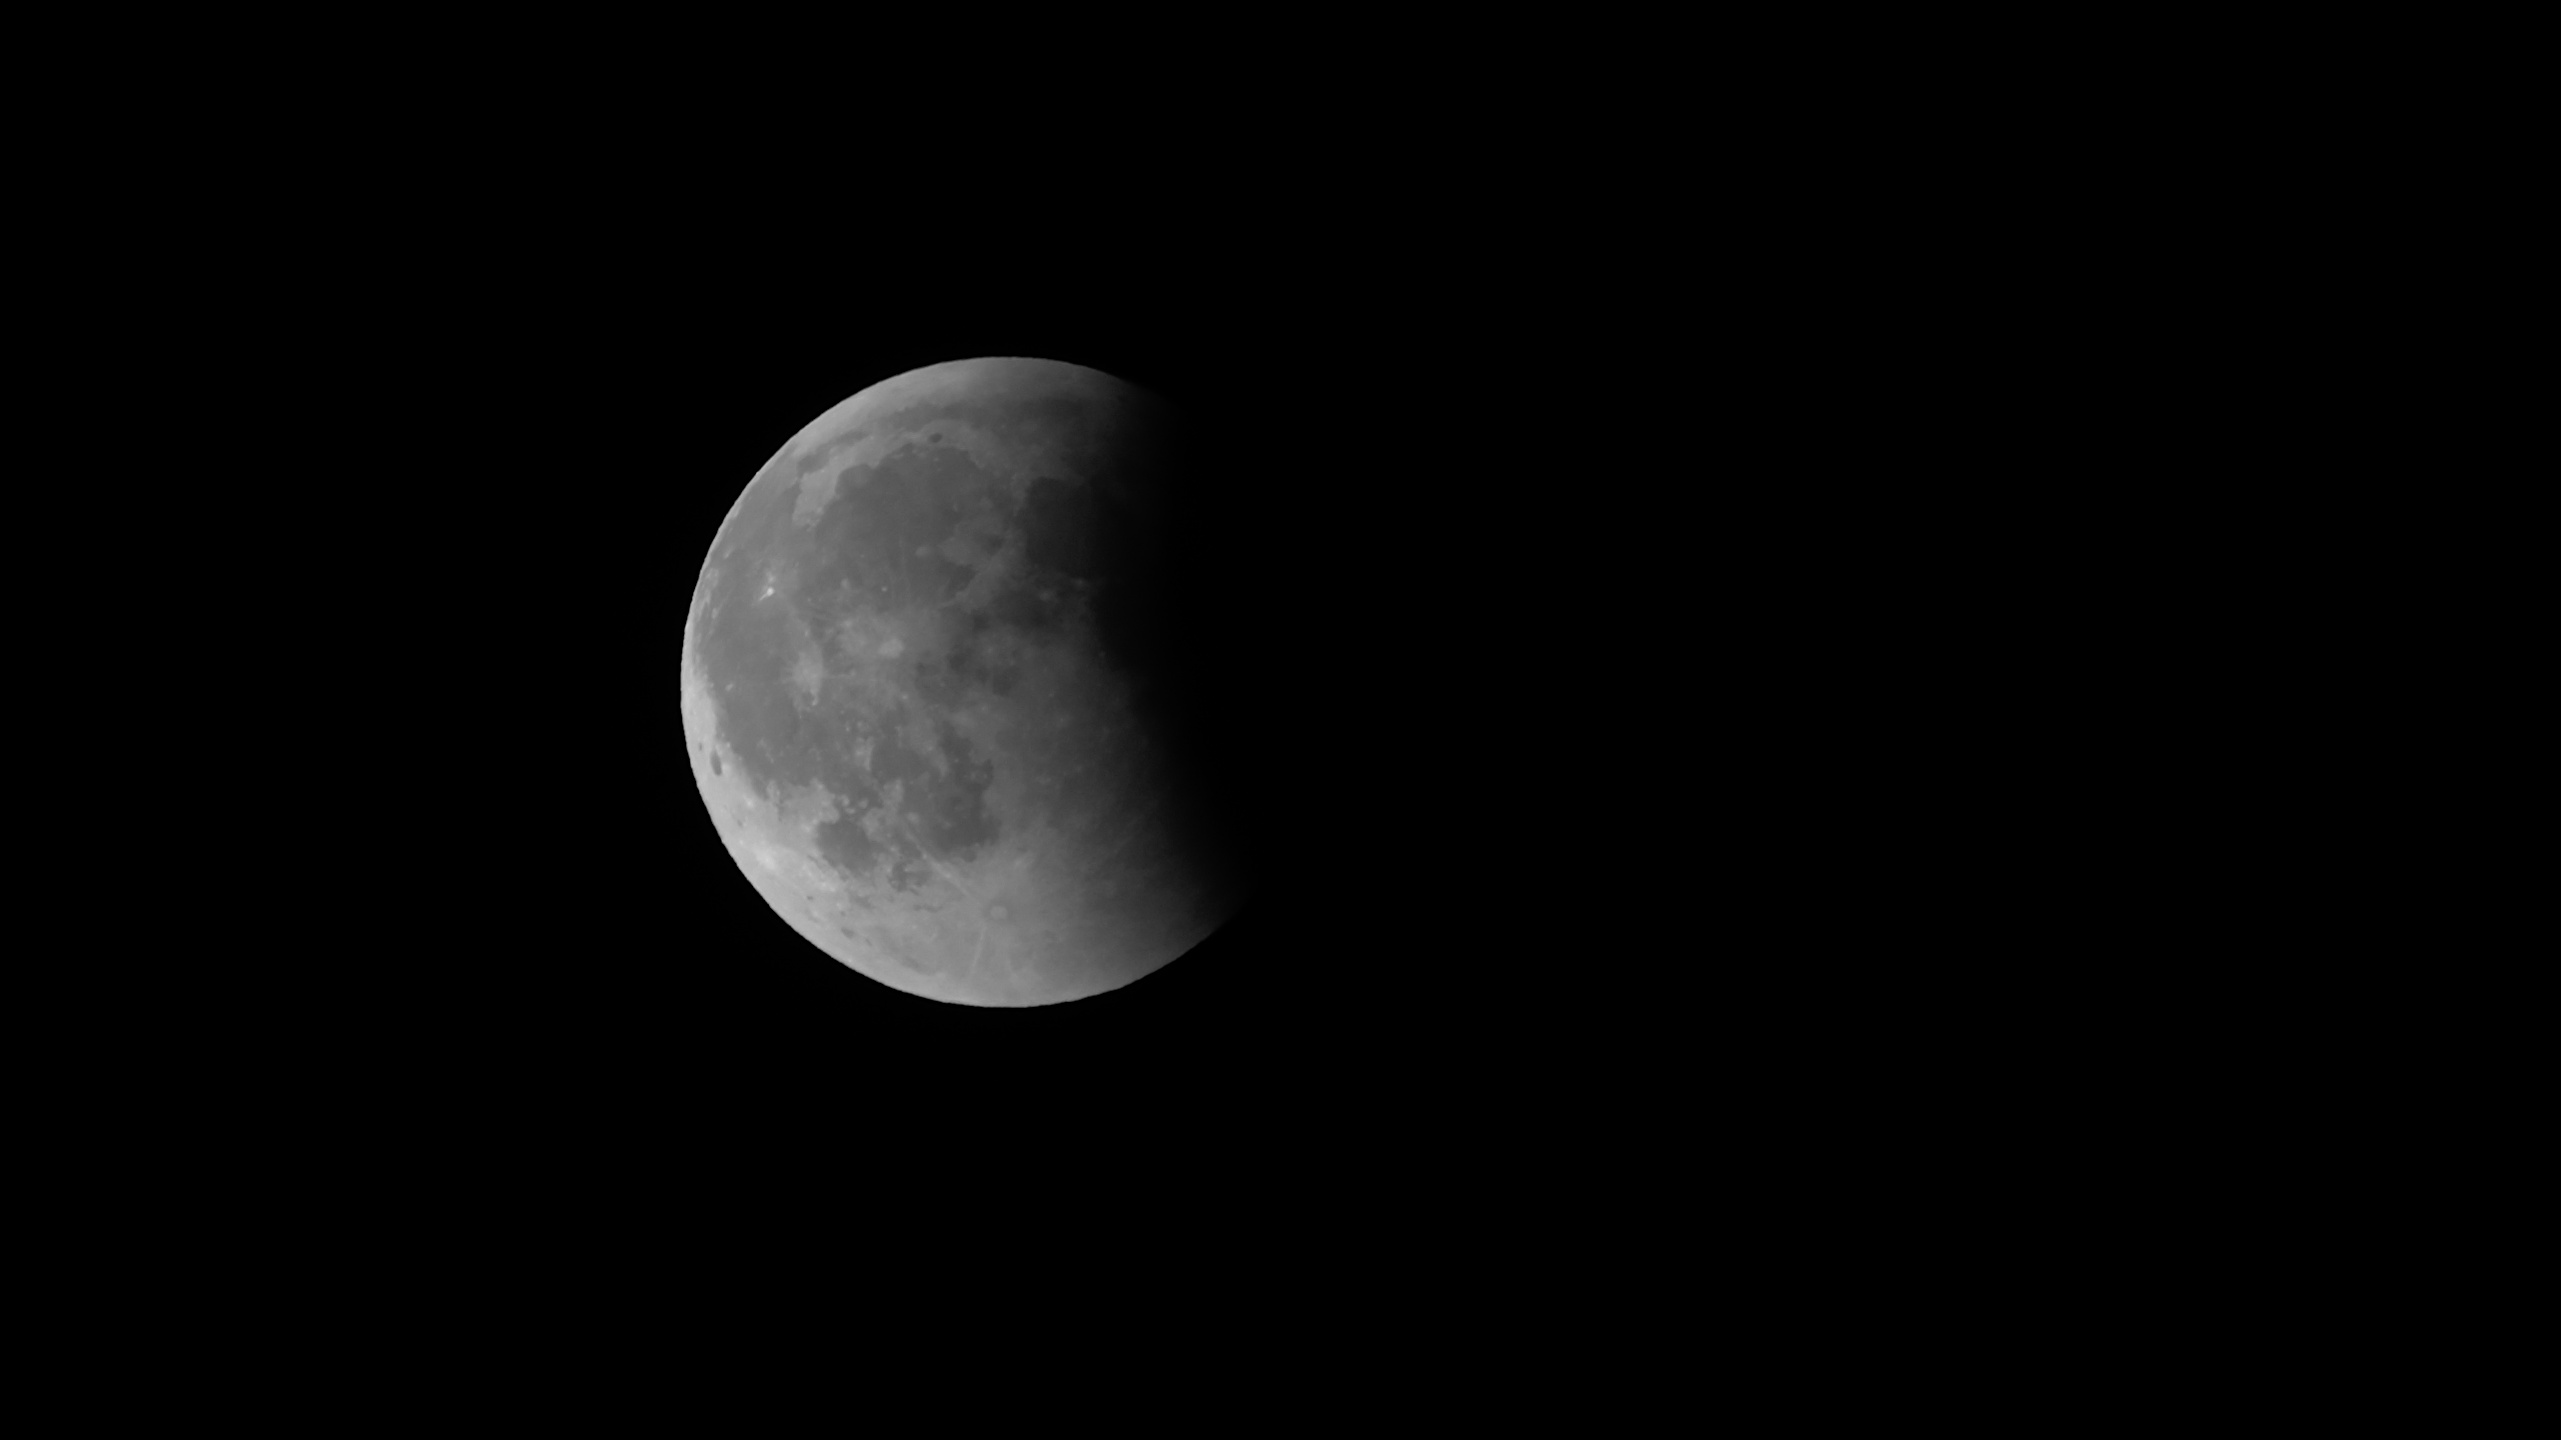 Full moon roughly one-third obscured by Earth's shadow